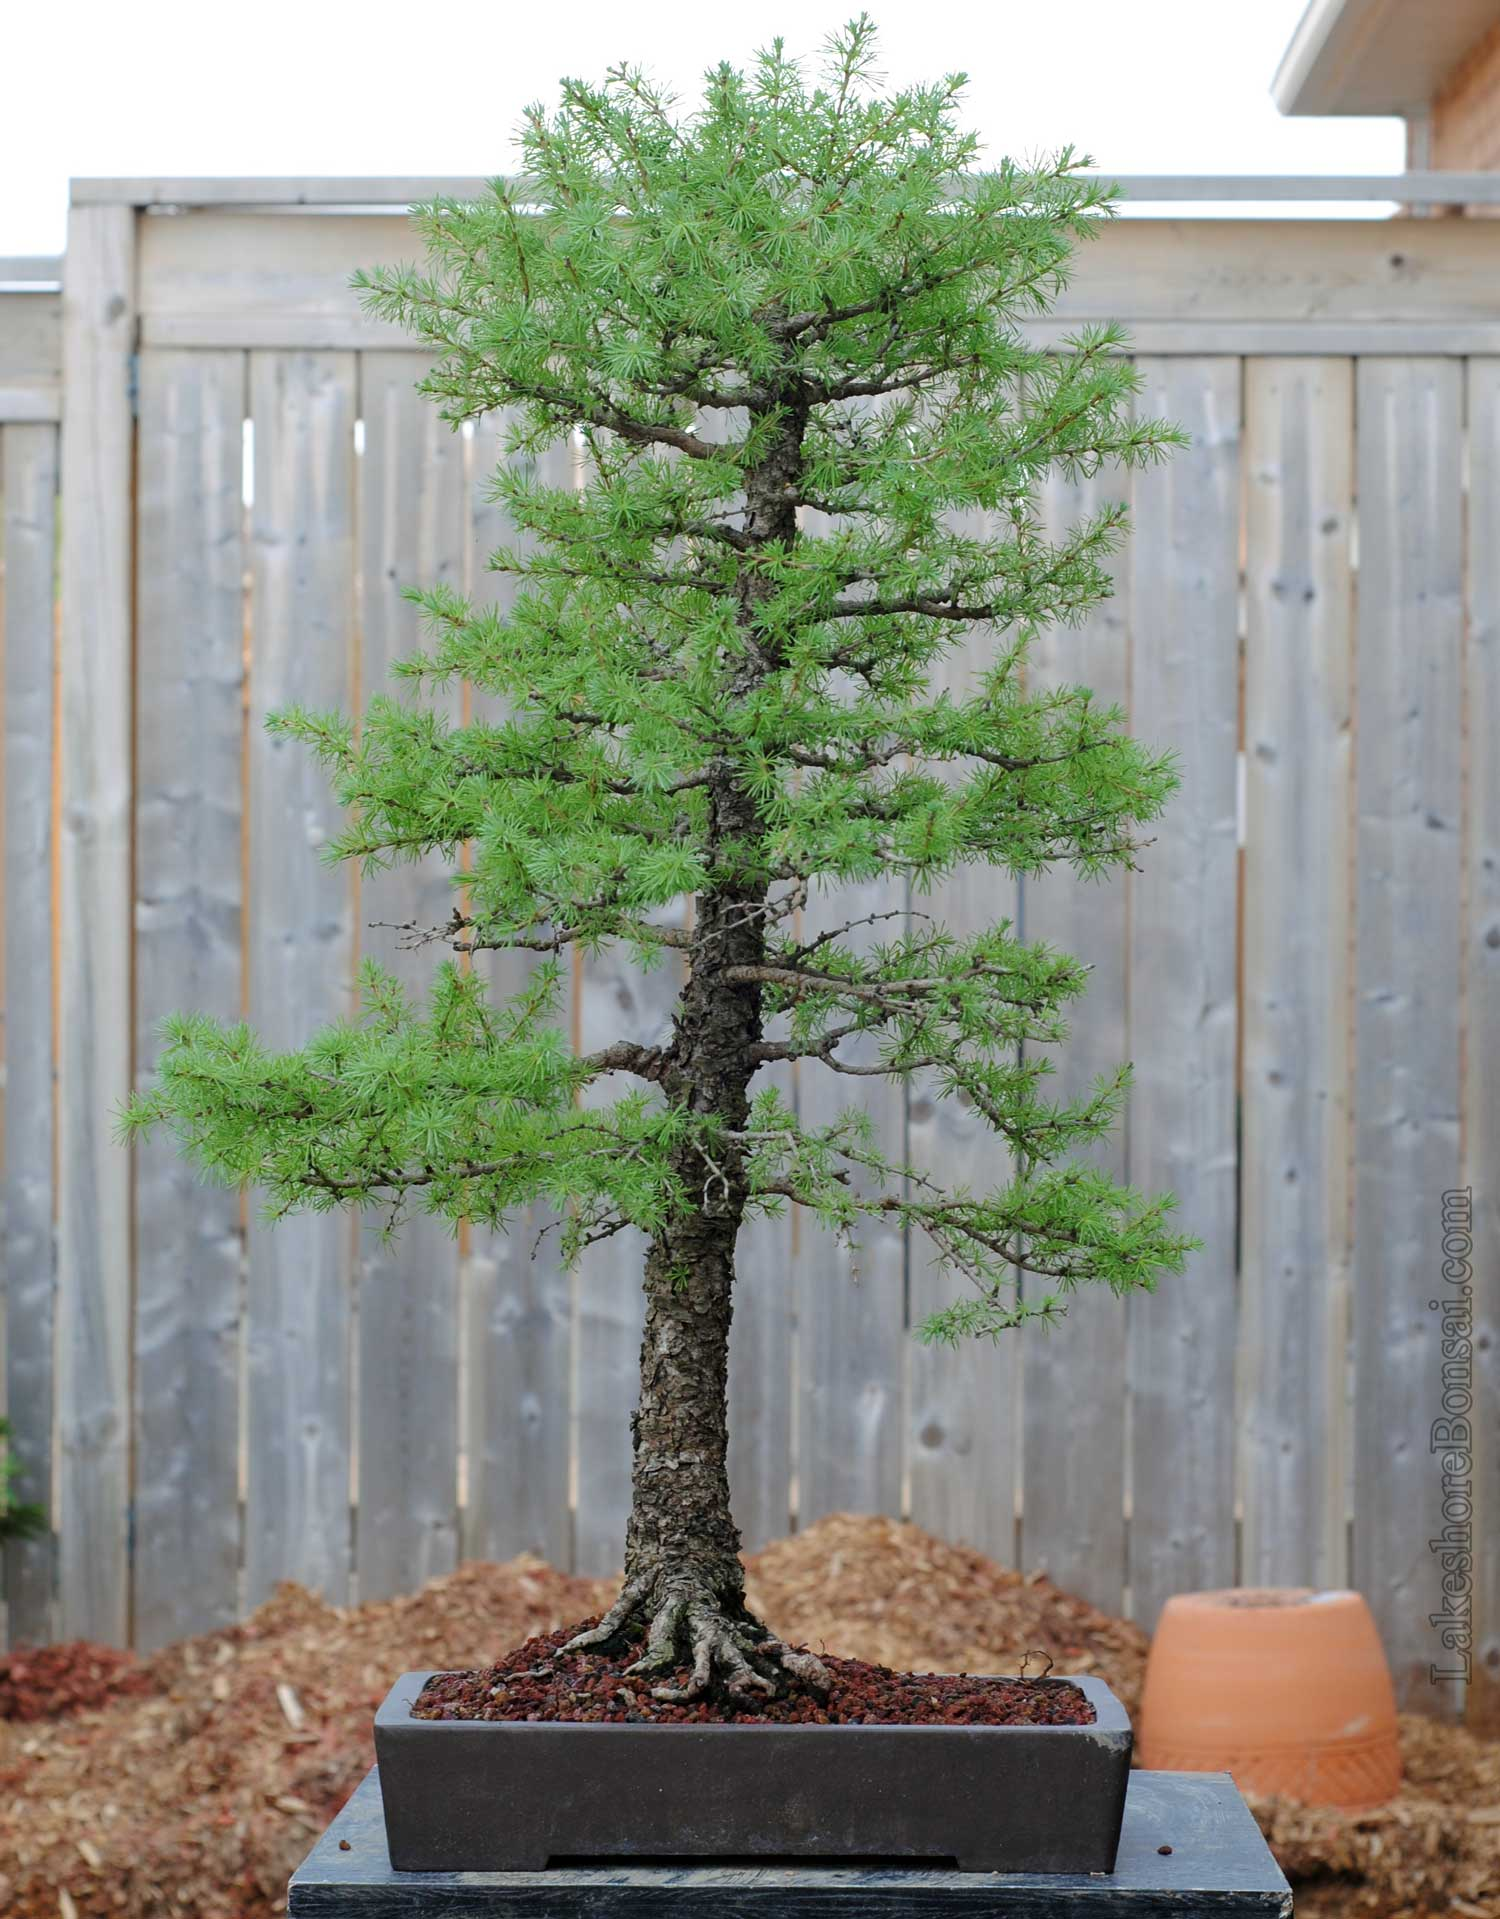 A testament to the strength of larches, the tree is budding out nicely after transplanting. I have a feeling this might be Japanese larch based on the bark and needles. Regardless, it has been grown in a container for a very long time.